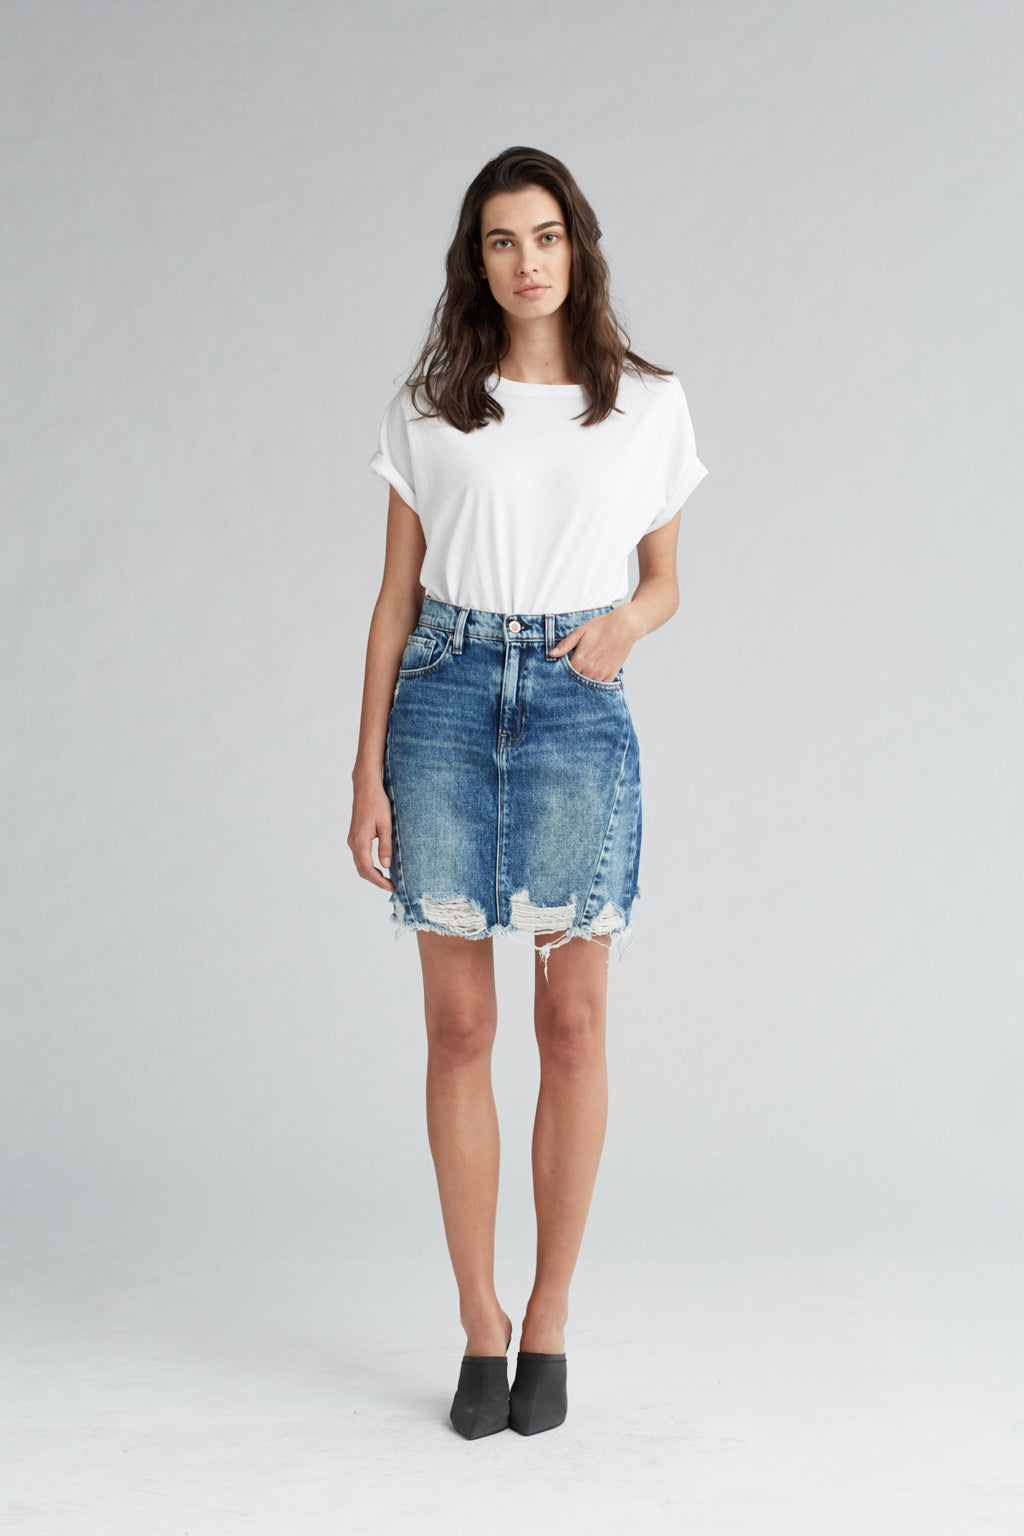 LULU DENIM PENCIL SKIRT - OVERSHADOW - Image 1